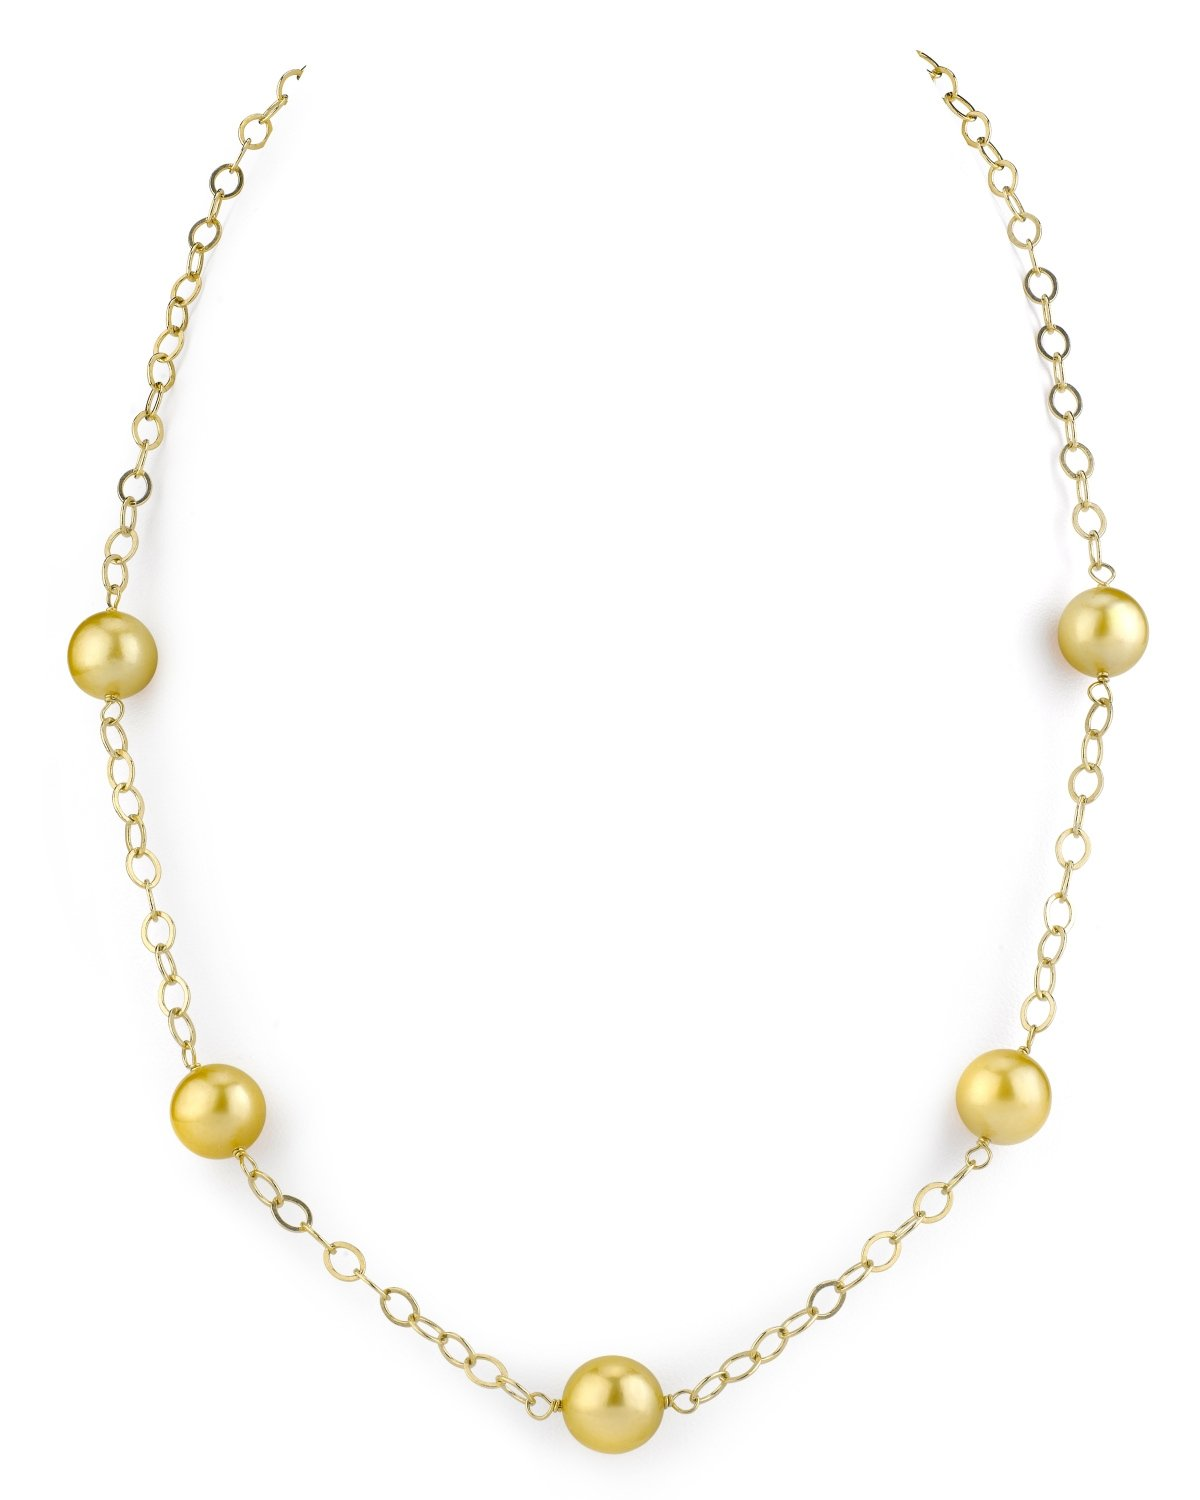 THE PEARL SOURCE 14K Gold 9-10mm Round Genuine Golden South Sea Cultured Pearl Necklace in 18'' Princess Length for Women